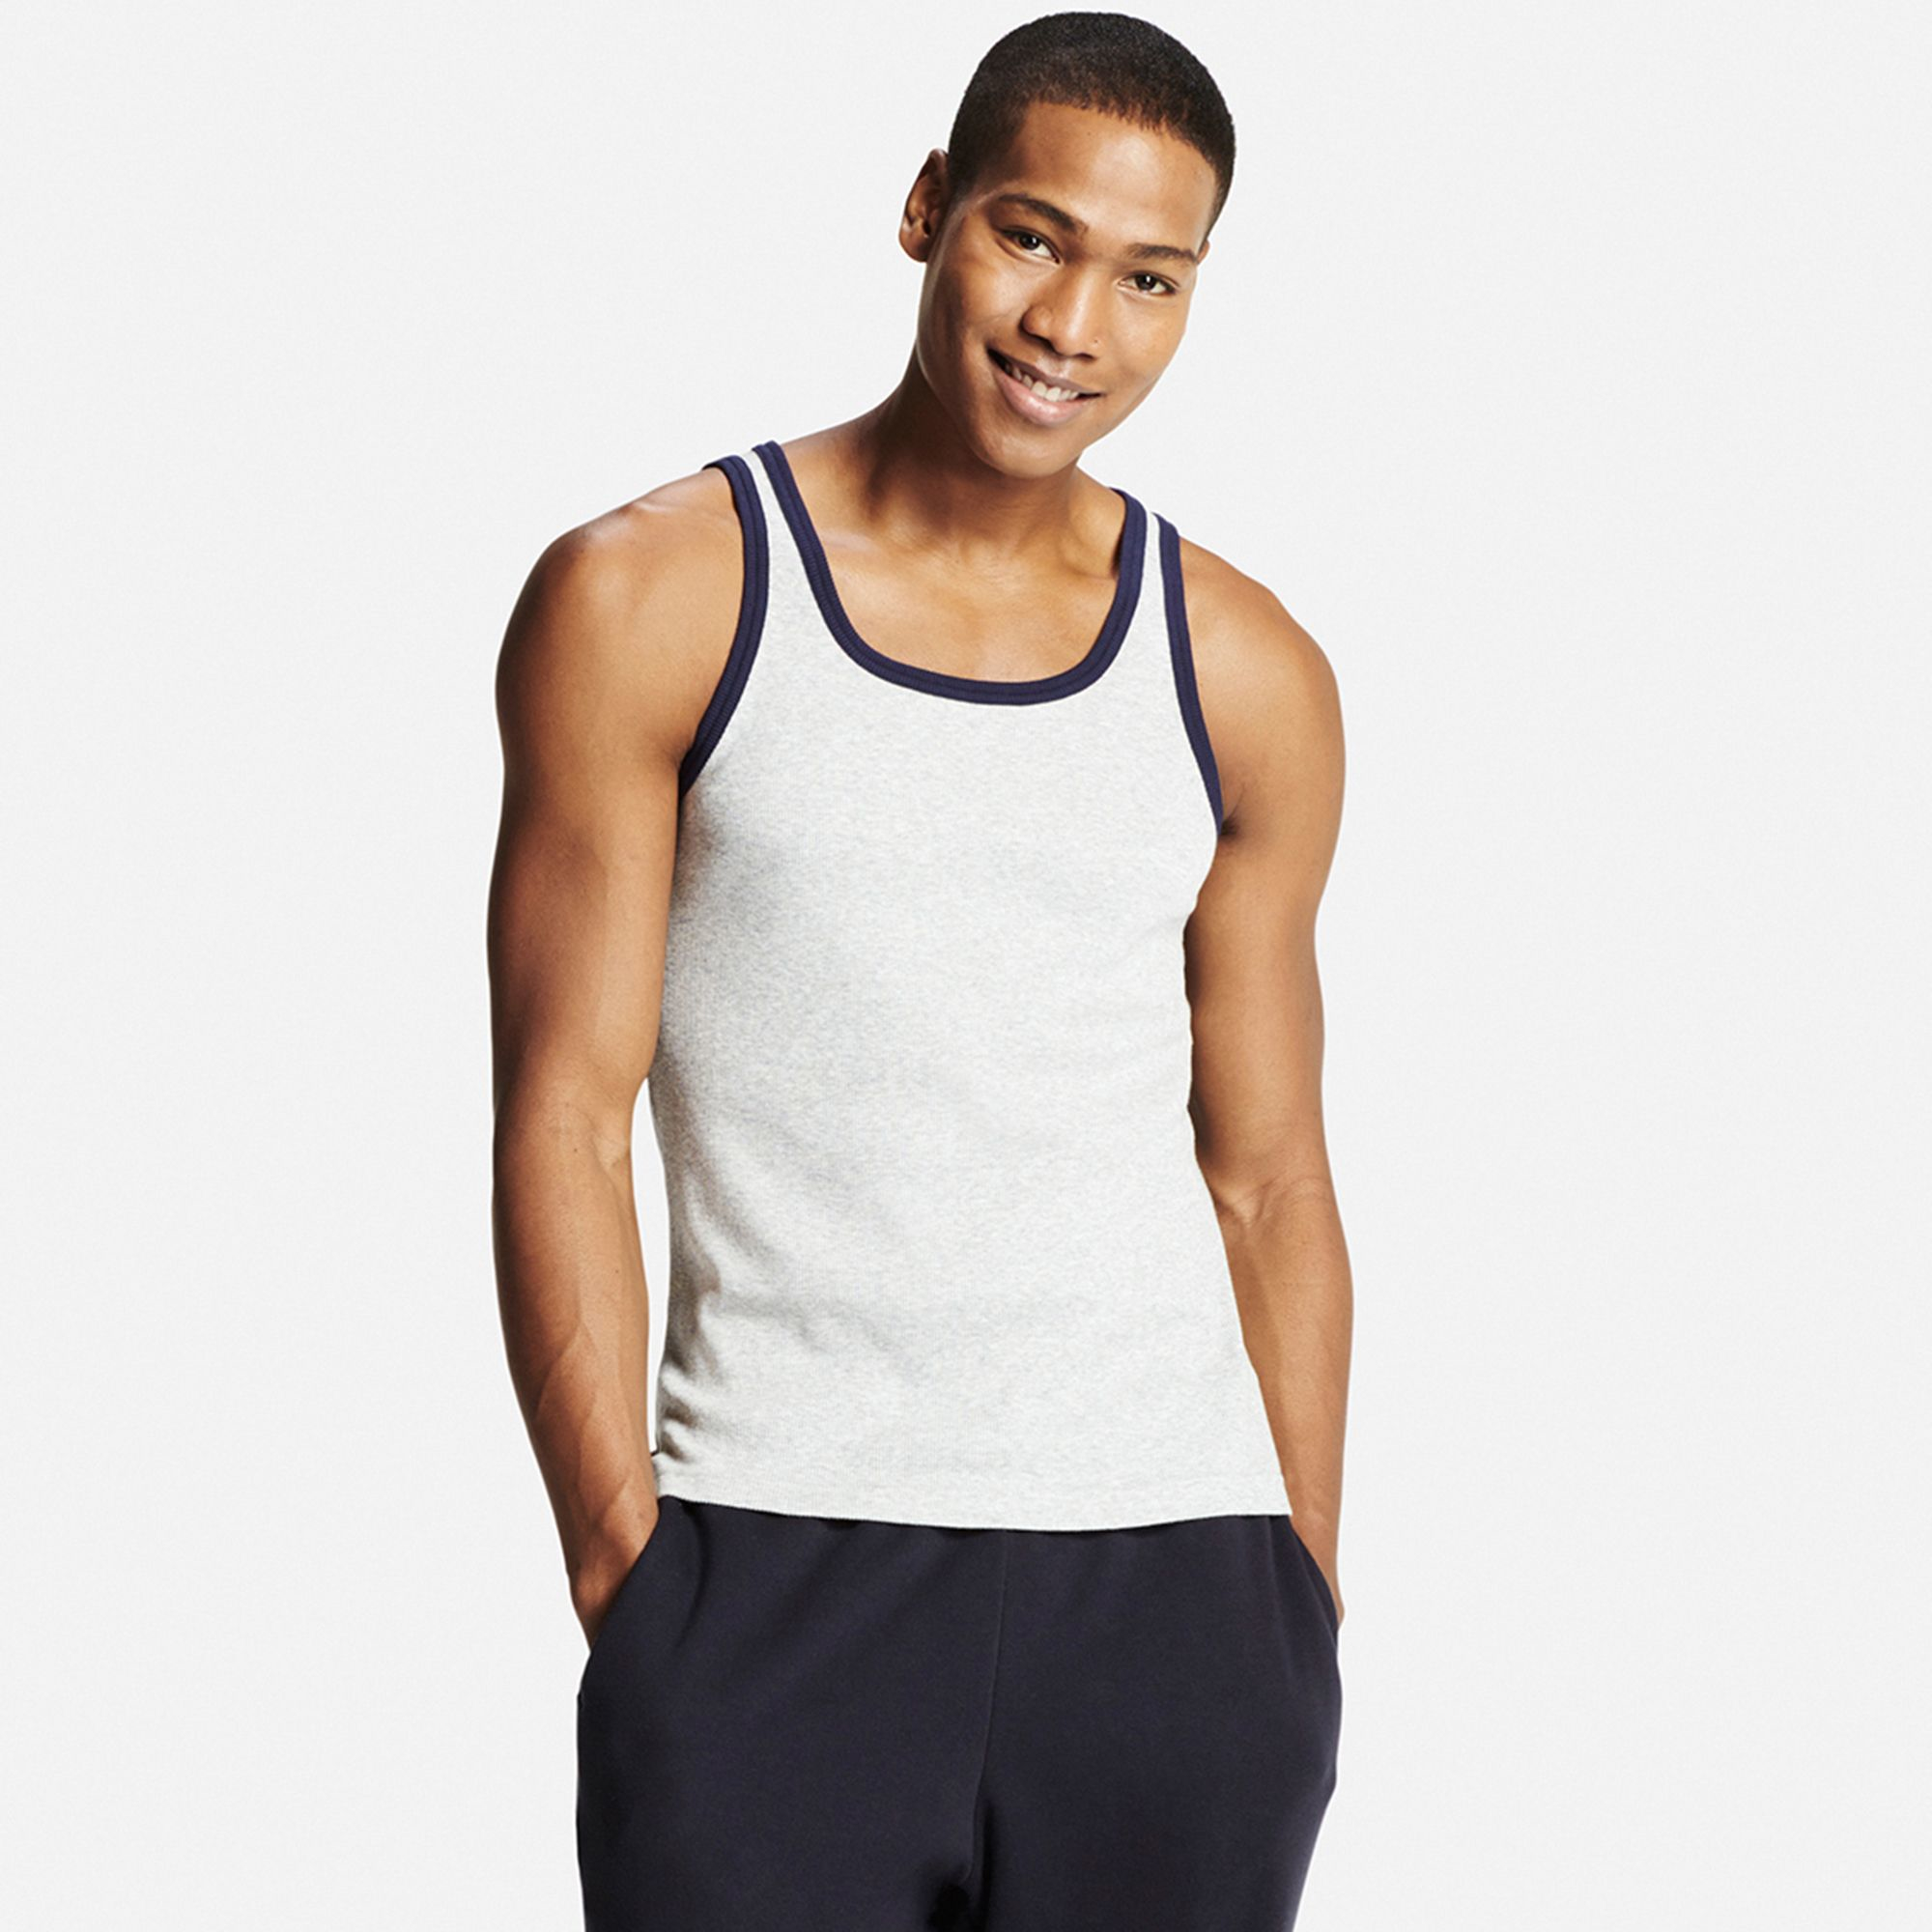 Next Level Men's Jersey Solid Tank Top Upload your design or enter text and set project details. We'll review your design, make any repairs and send a proof (all for FREE).